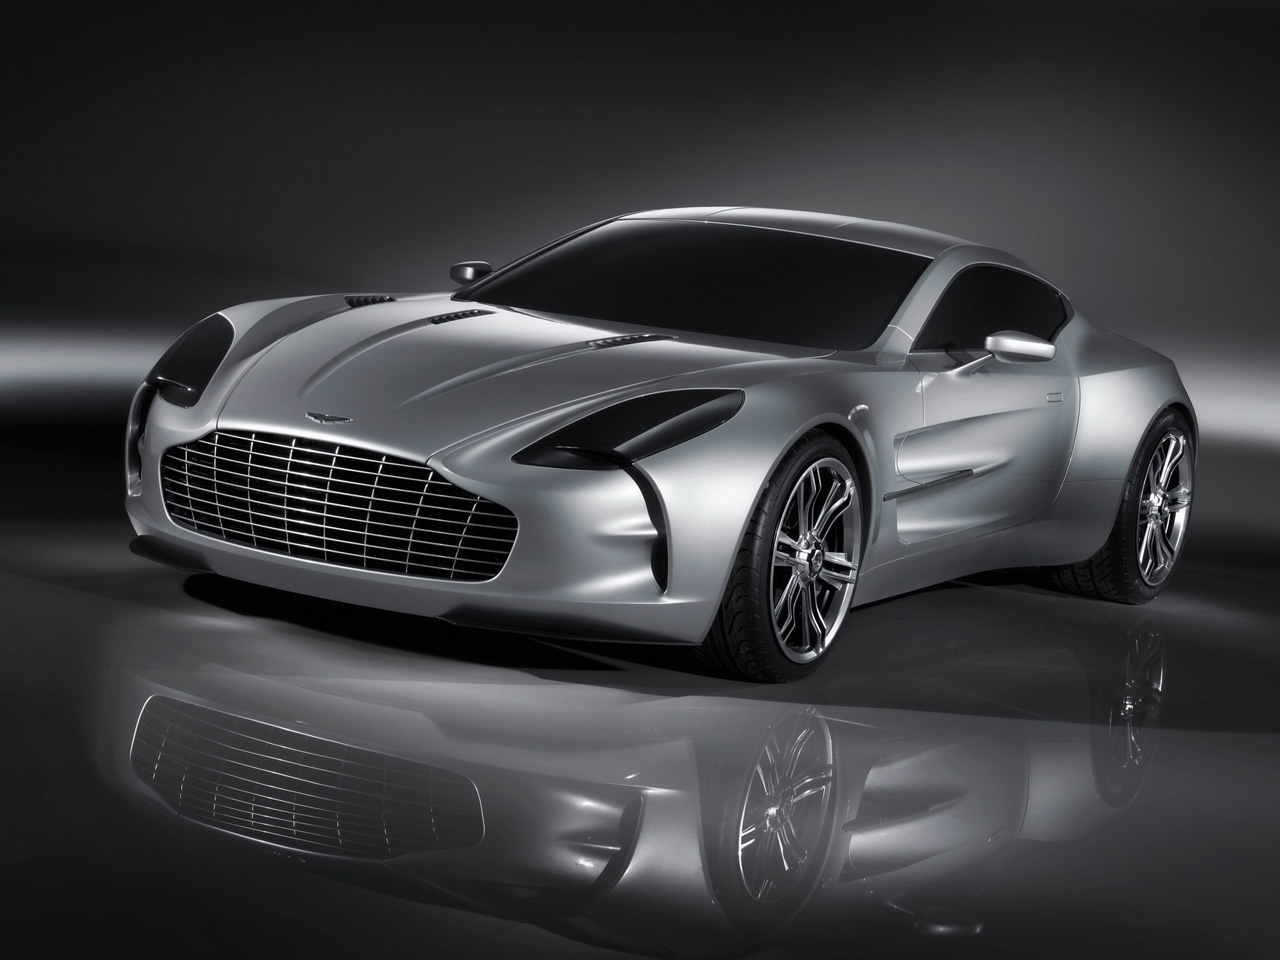 2010 Aston Martin One 77 Wallpaper 1 Car Walls 1280x960